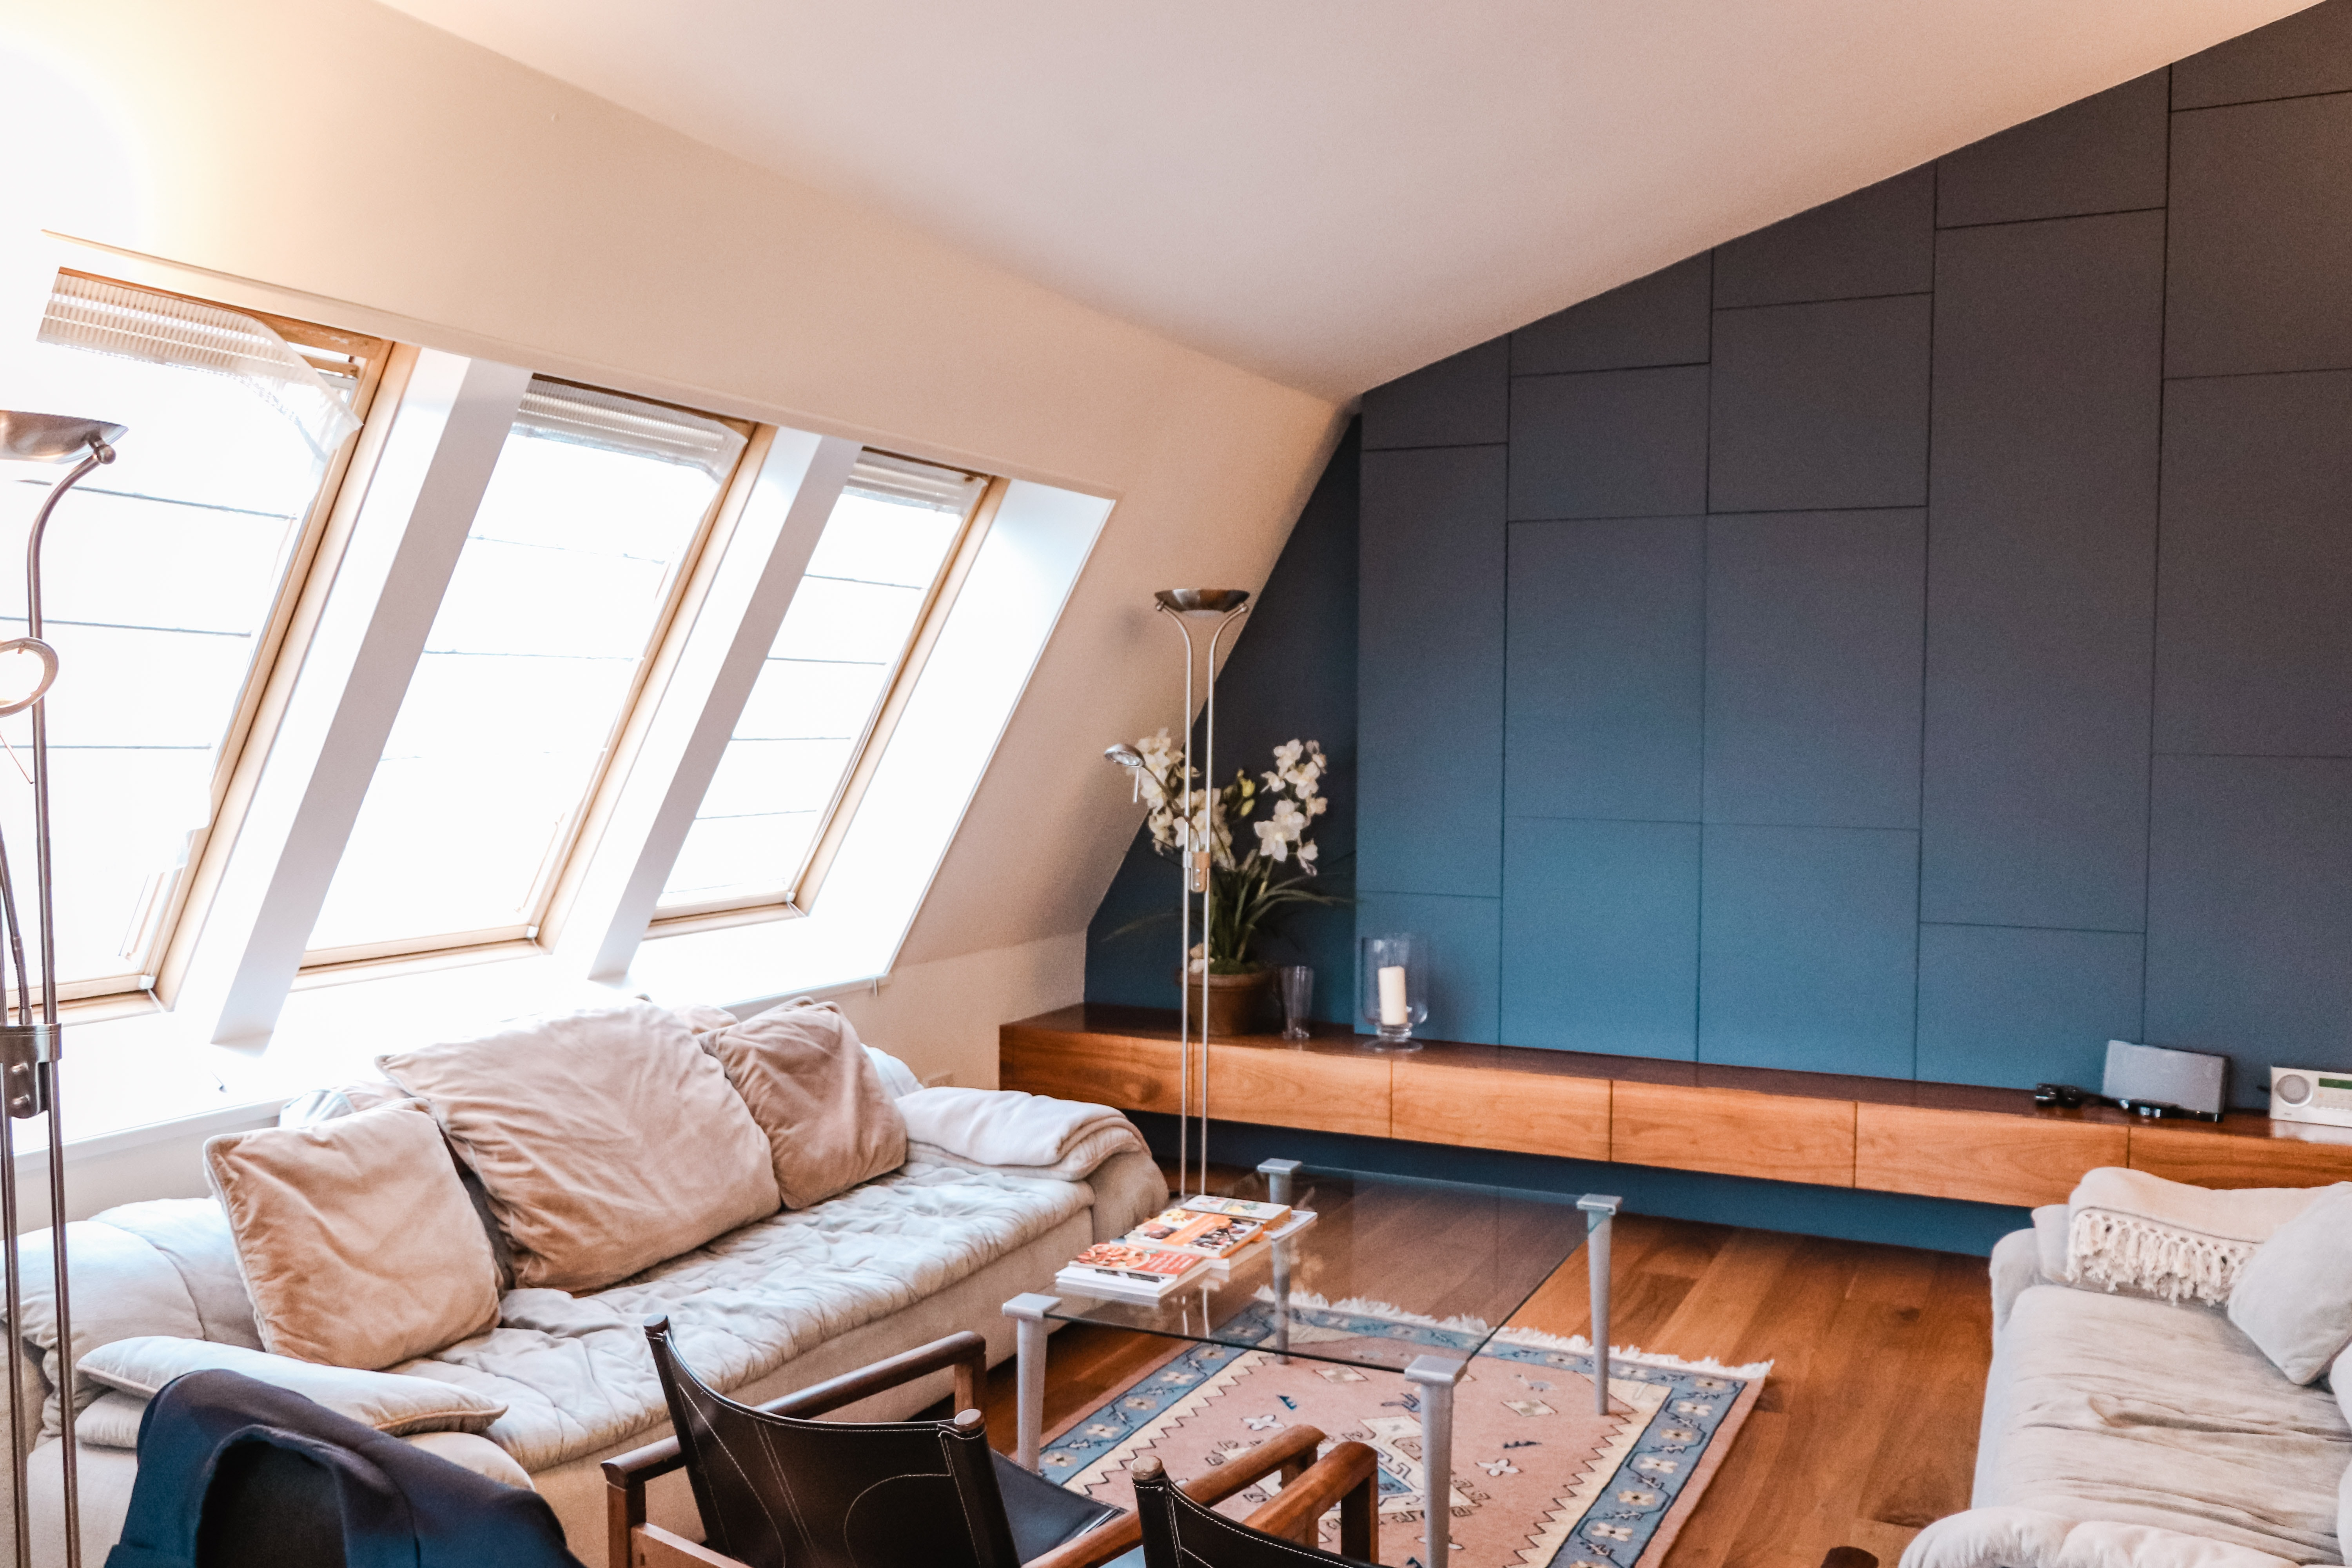 a room depicting living in a house vs an apartment